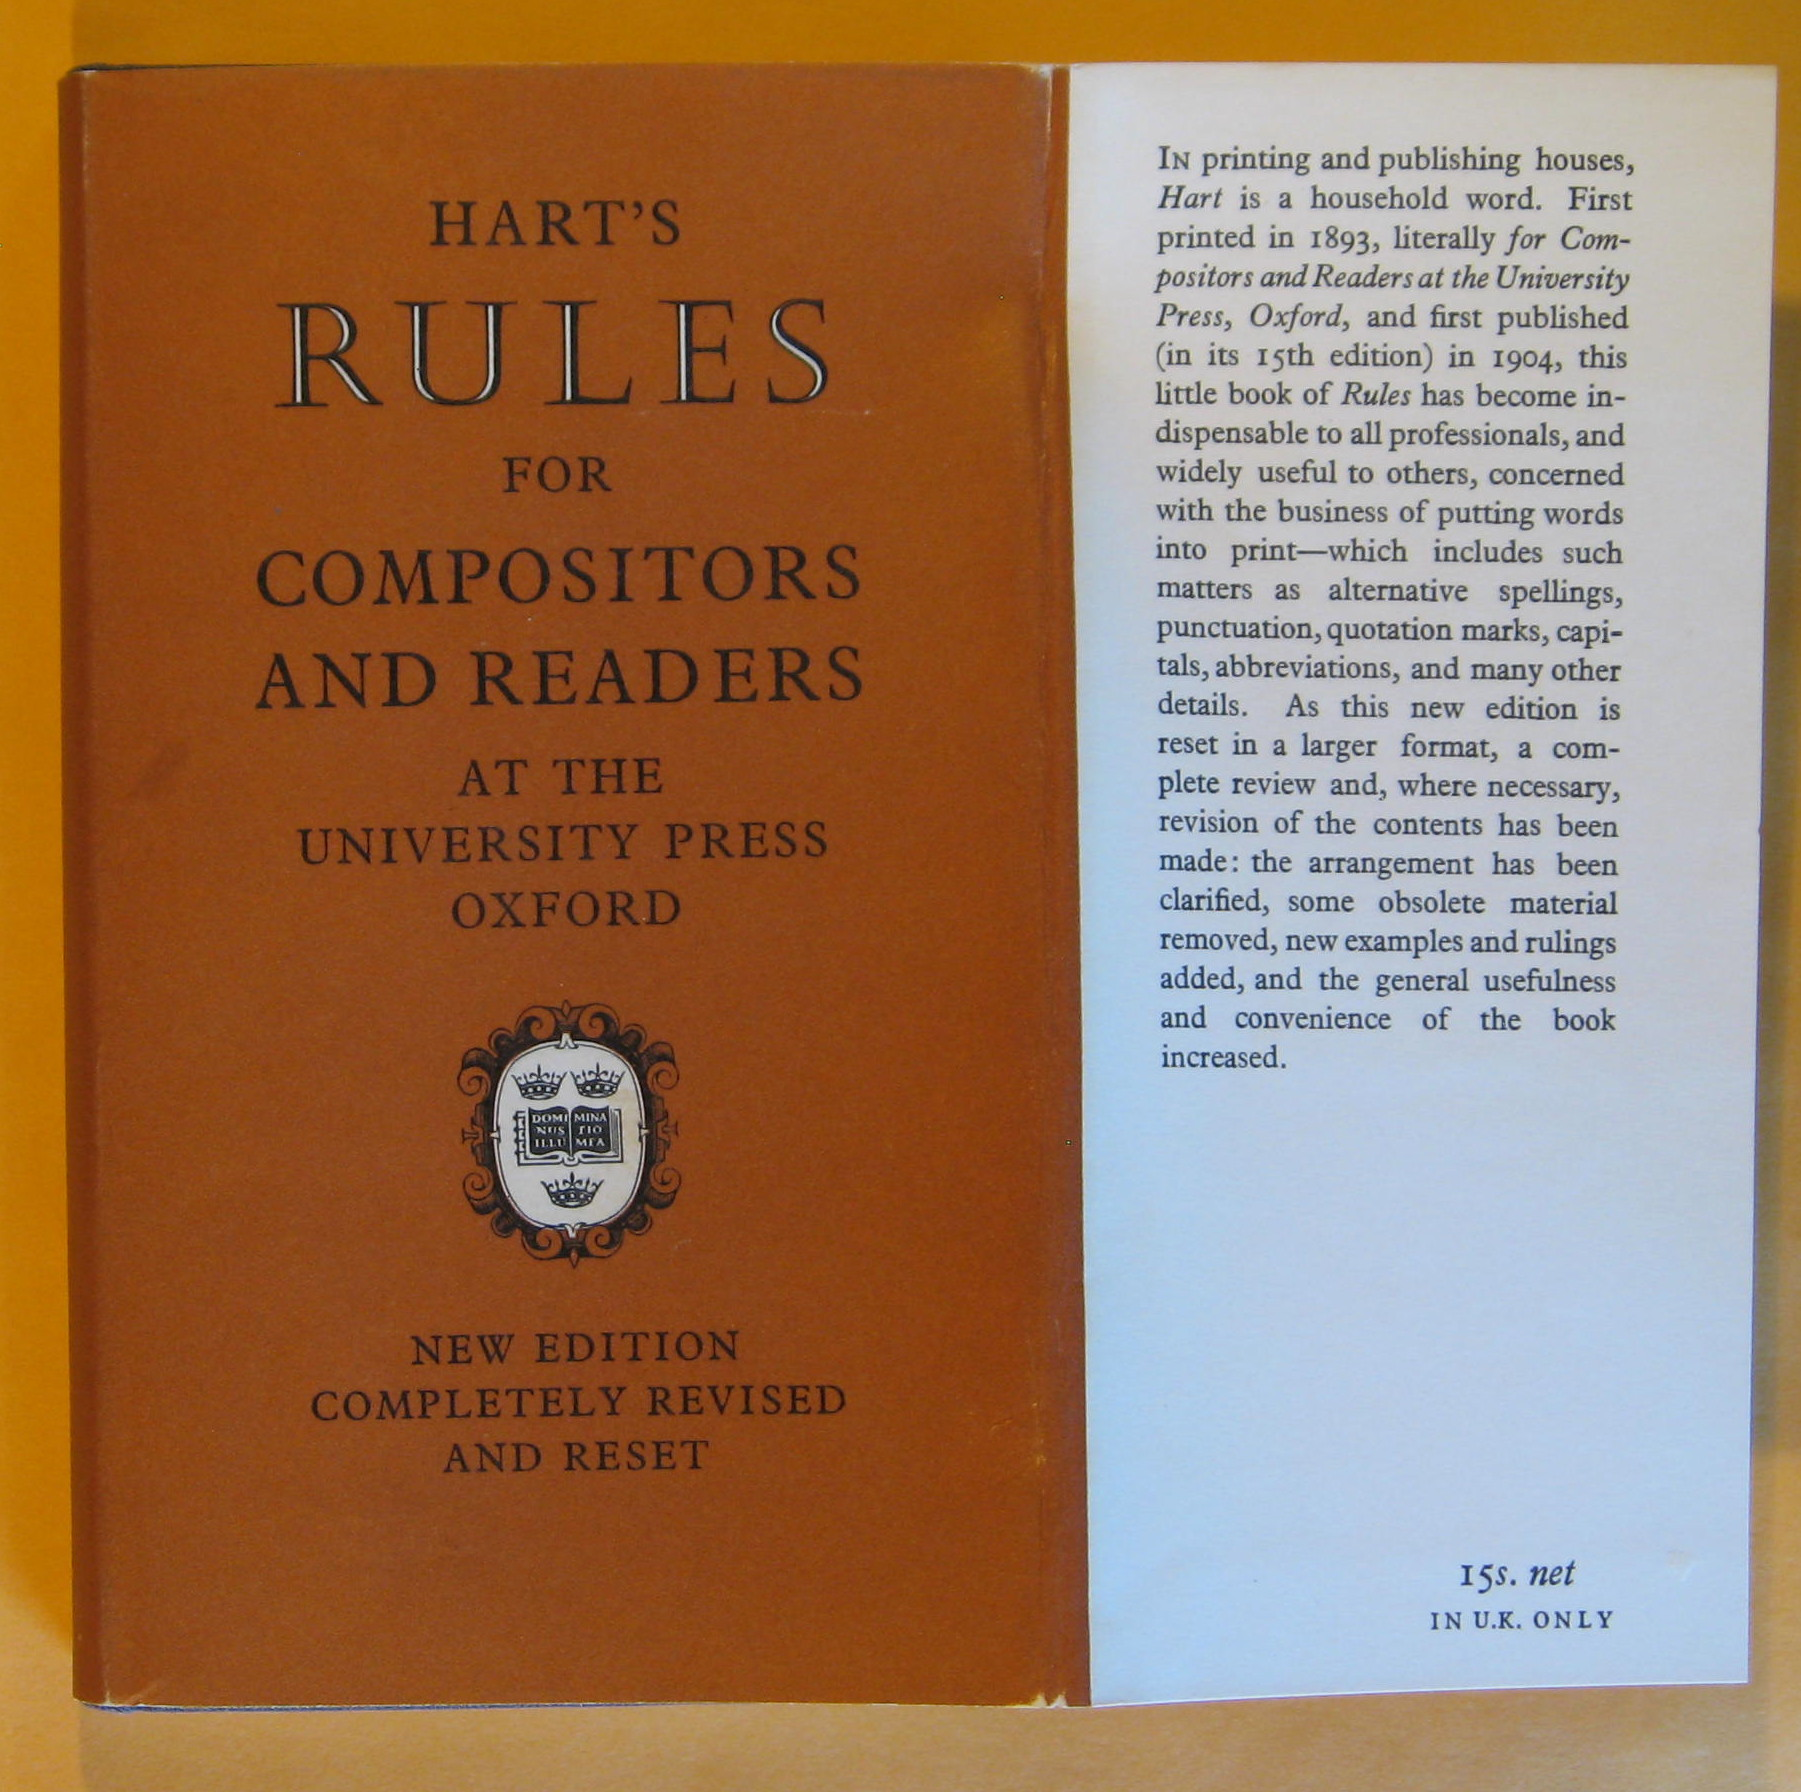 Image for Hart's Rules for Compositors and Readers at the University Press Oxford (37th edition)